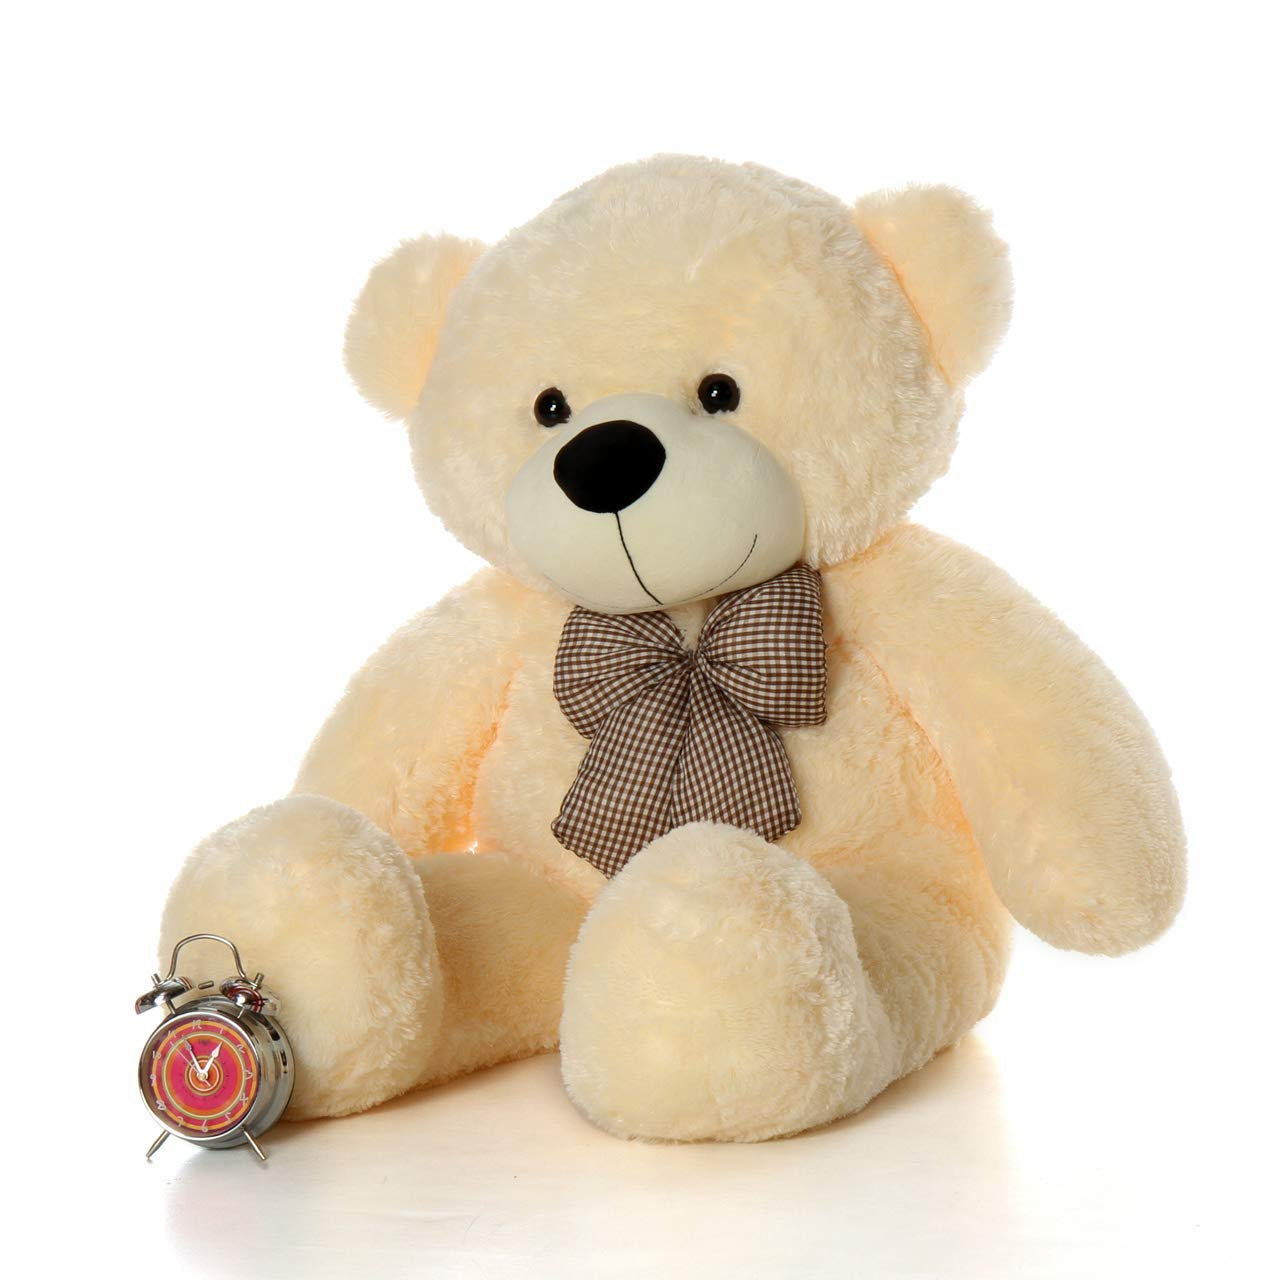 MSY TOYS Teddy Bear for Girls, Panda Teddy Bears